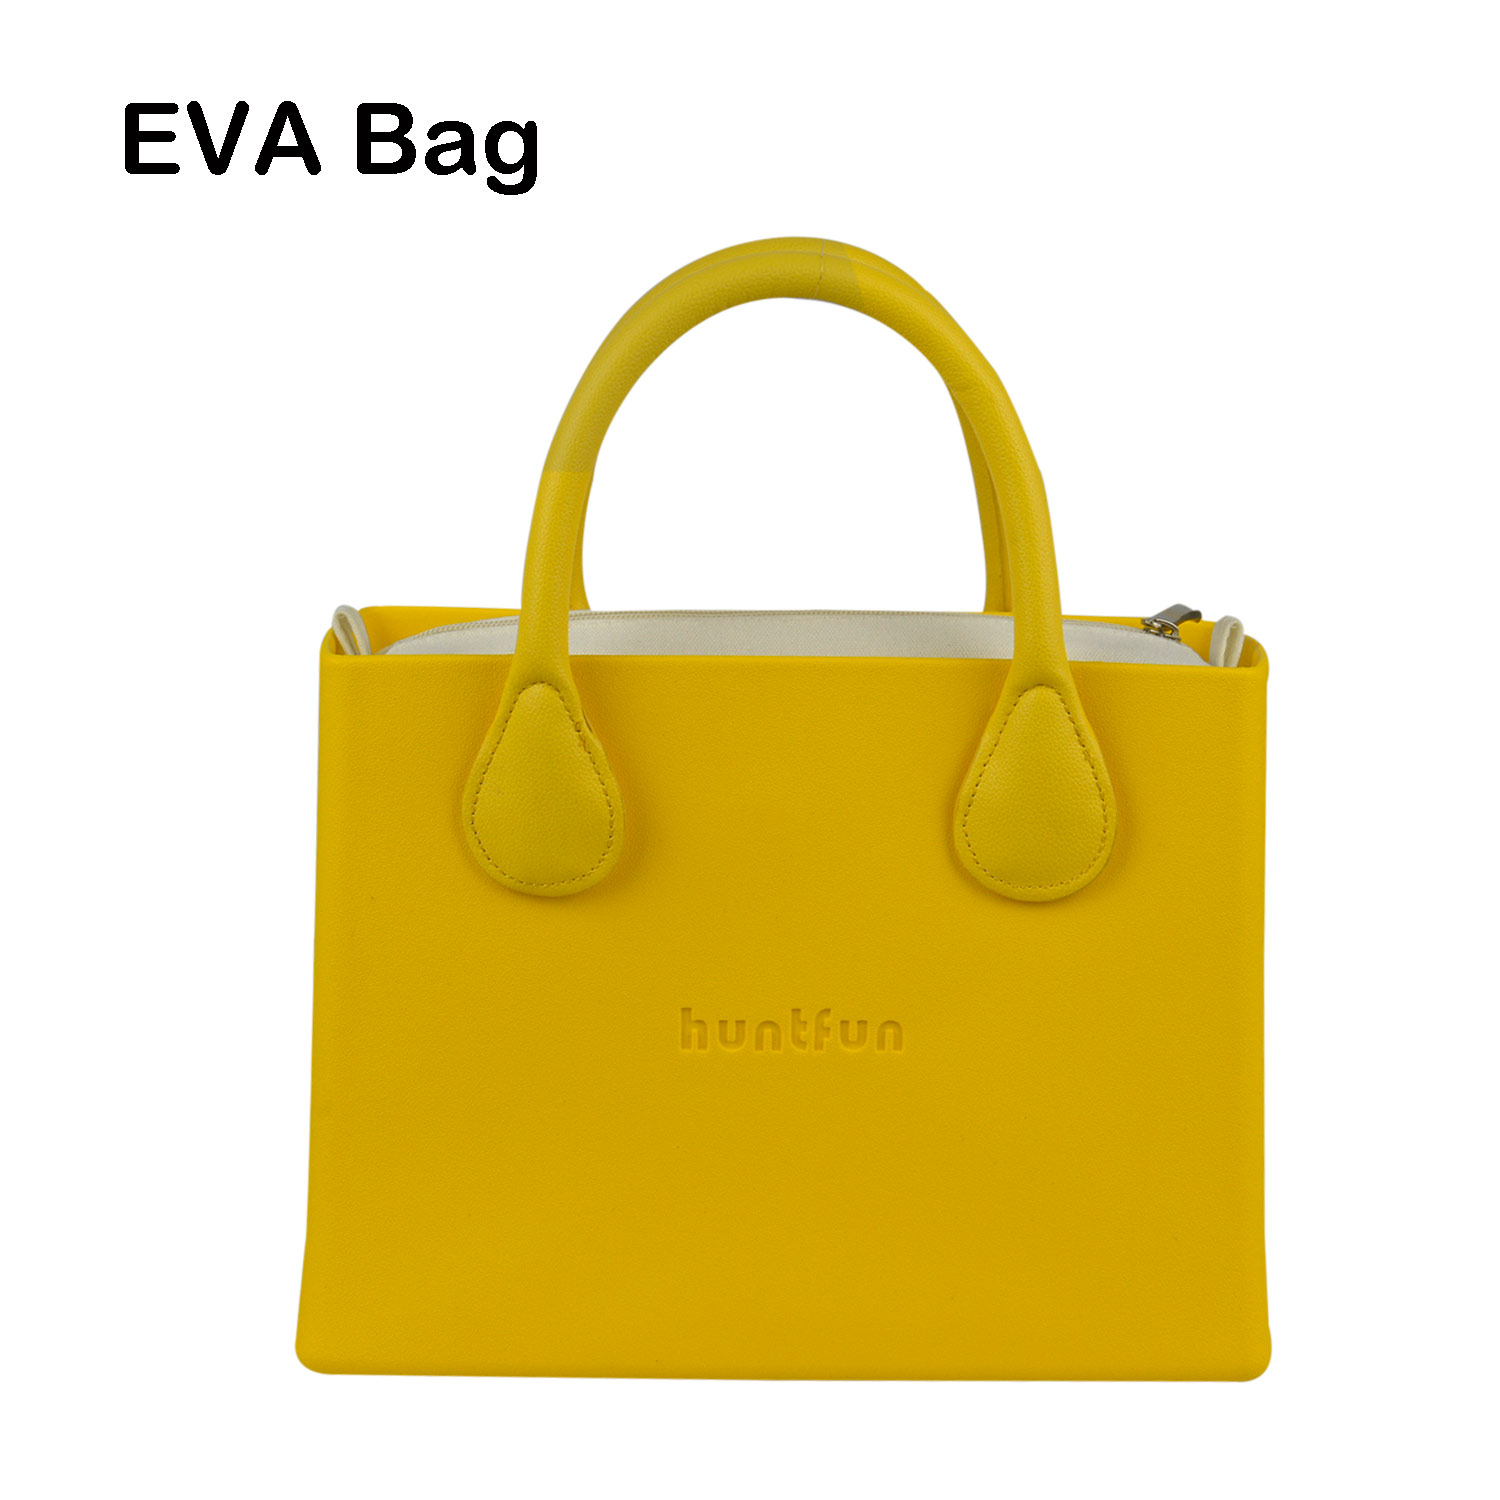 New huntfun Rubber Silicon shoulder bag EVA Square Bag Canvas Insert Leather Handle Waterproof O Bag Style Women O HandbagNew huntfun Rubber Silicon shoulder bag EVA Square Bag Canvas Insert Leather Handle Waterproof O Bag Style Women O Handbag